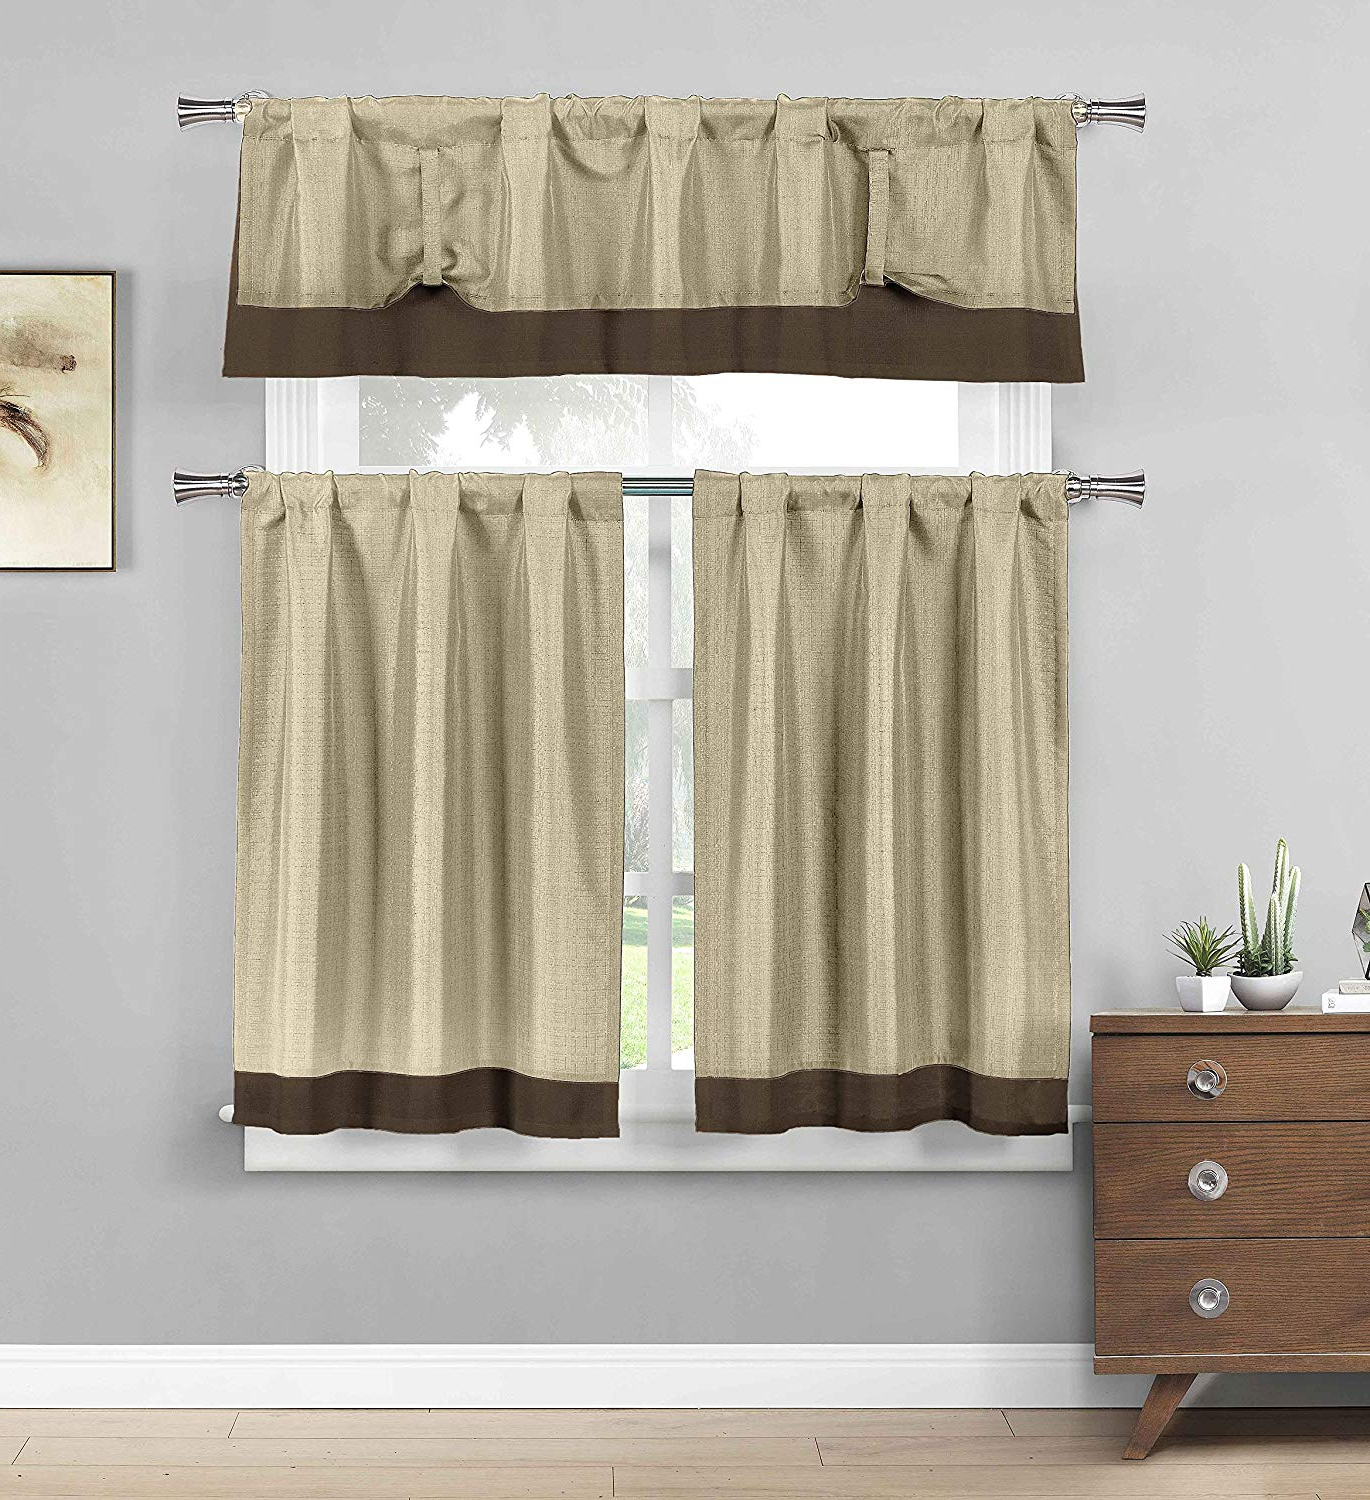 Most Recent Bathroom And More Three Piece Kitchen/cafe Tier Window Curtain Set: Chocolate Brown Border Accent (Linen) With Regard To Solid Microfiber 3 Piece Kitchen Curtain Valance And Tiers Sets (View 6 of 20)